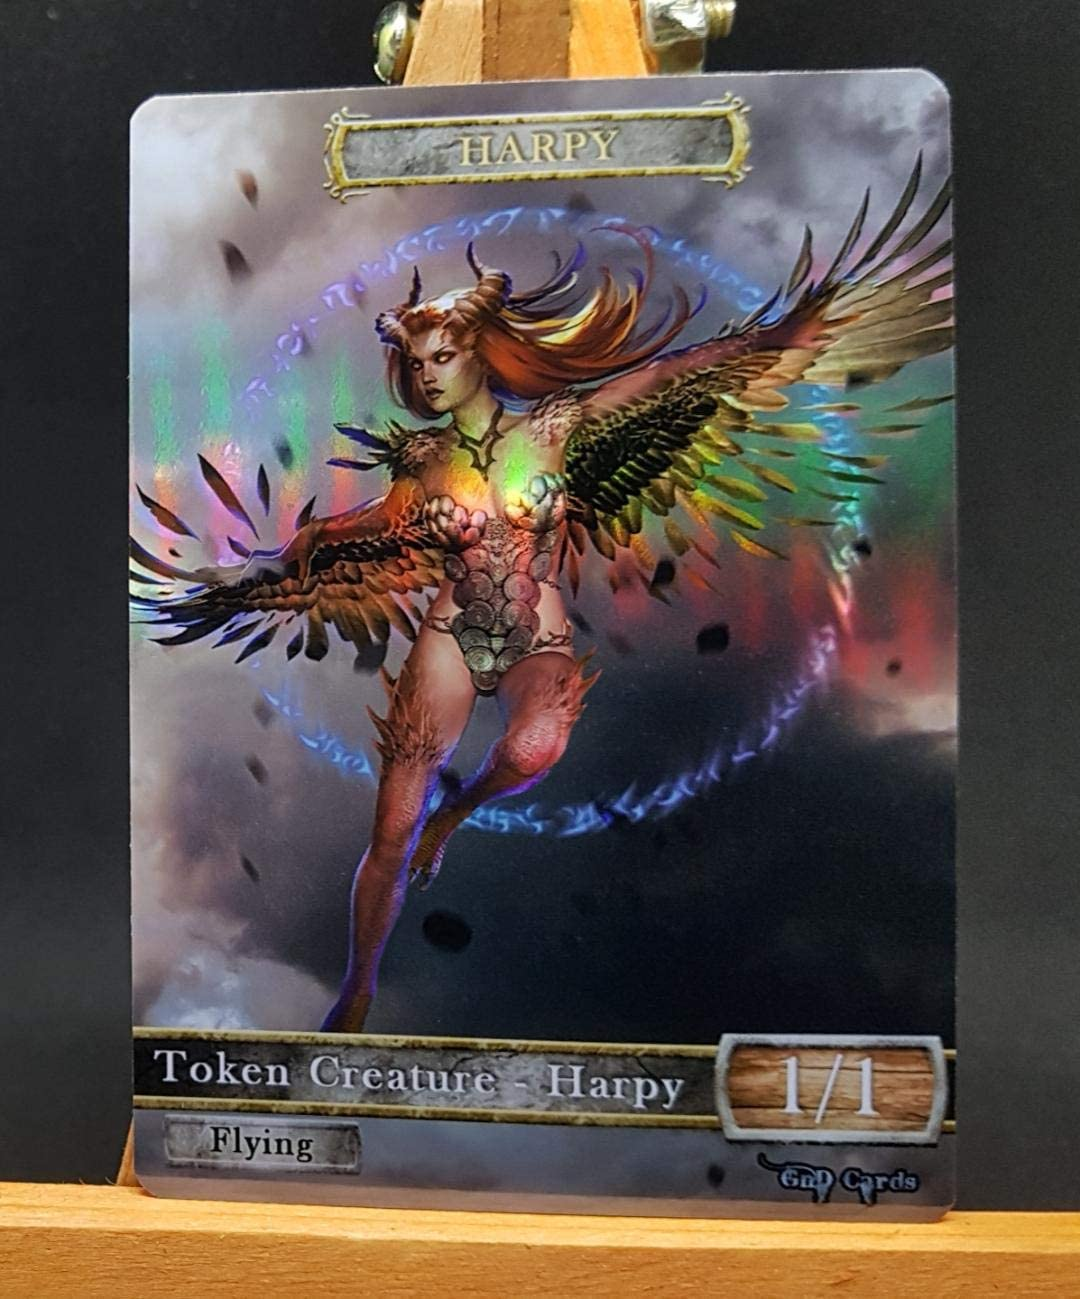 GnD Cards 1x Harpy FOIL Laminated Custom Altered Token